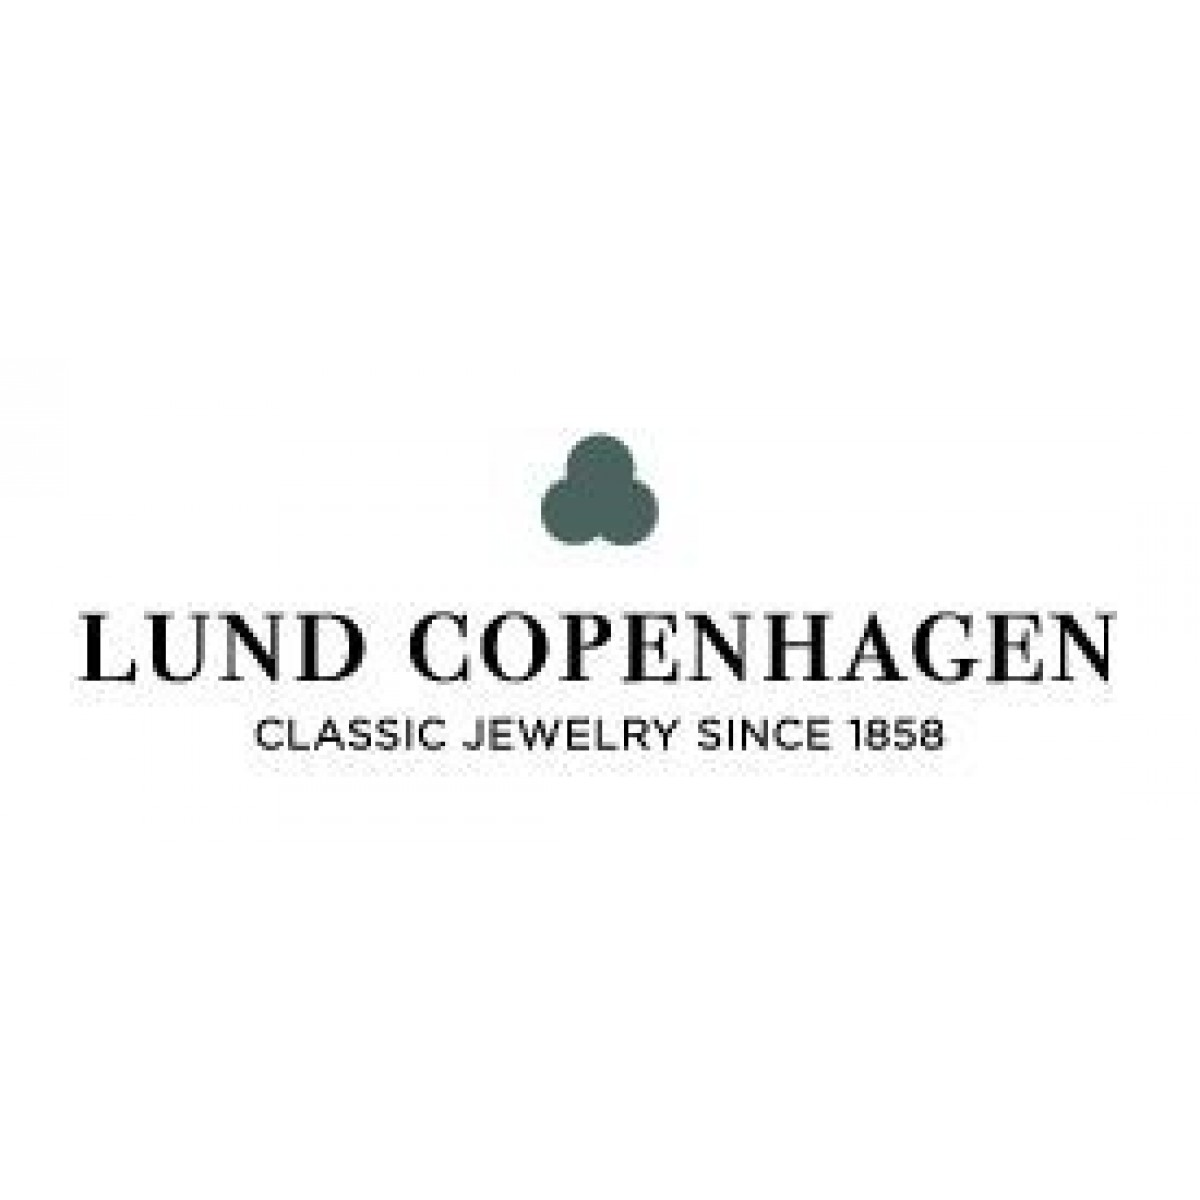 Lund Copenhagen marguerit broche 43 mm sølv/sort 904043-S-3